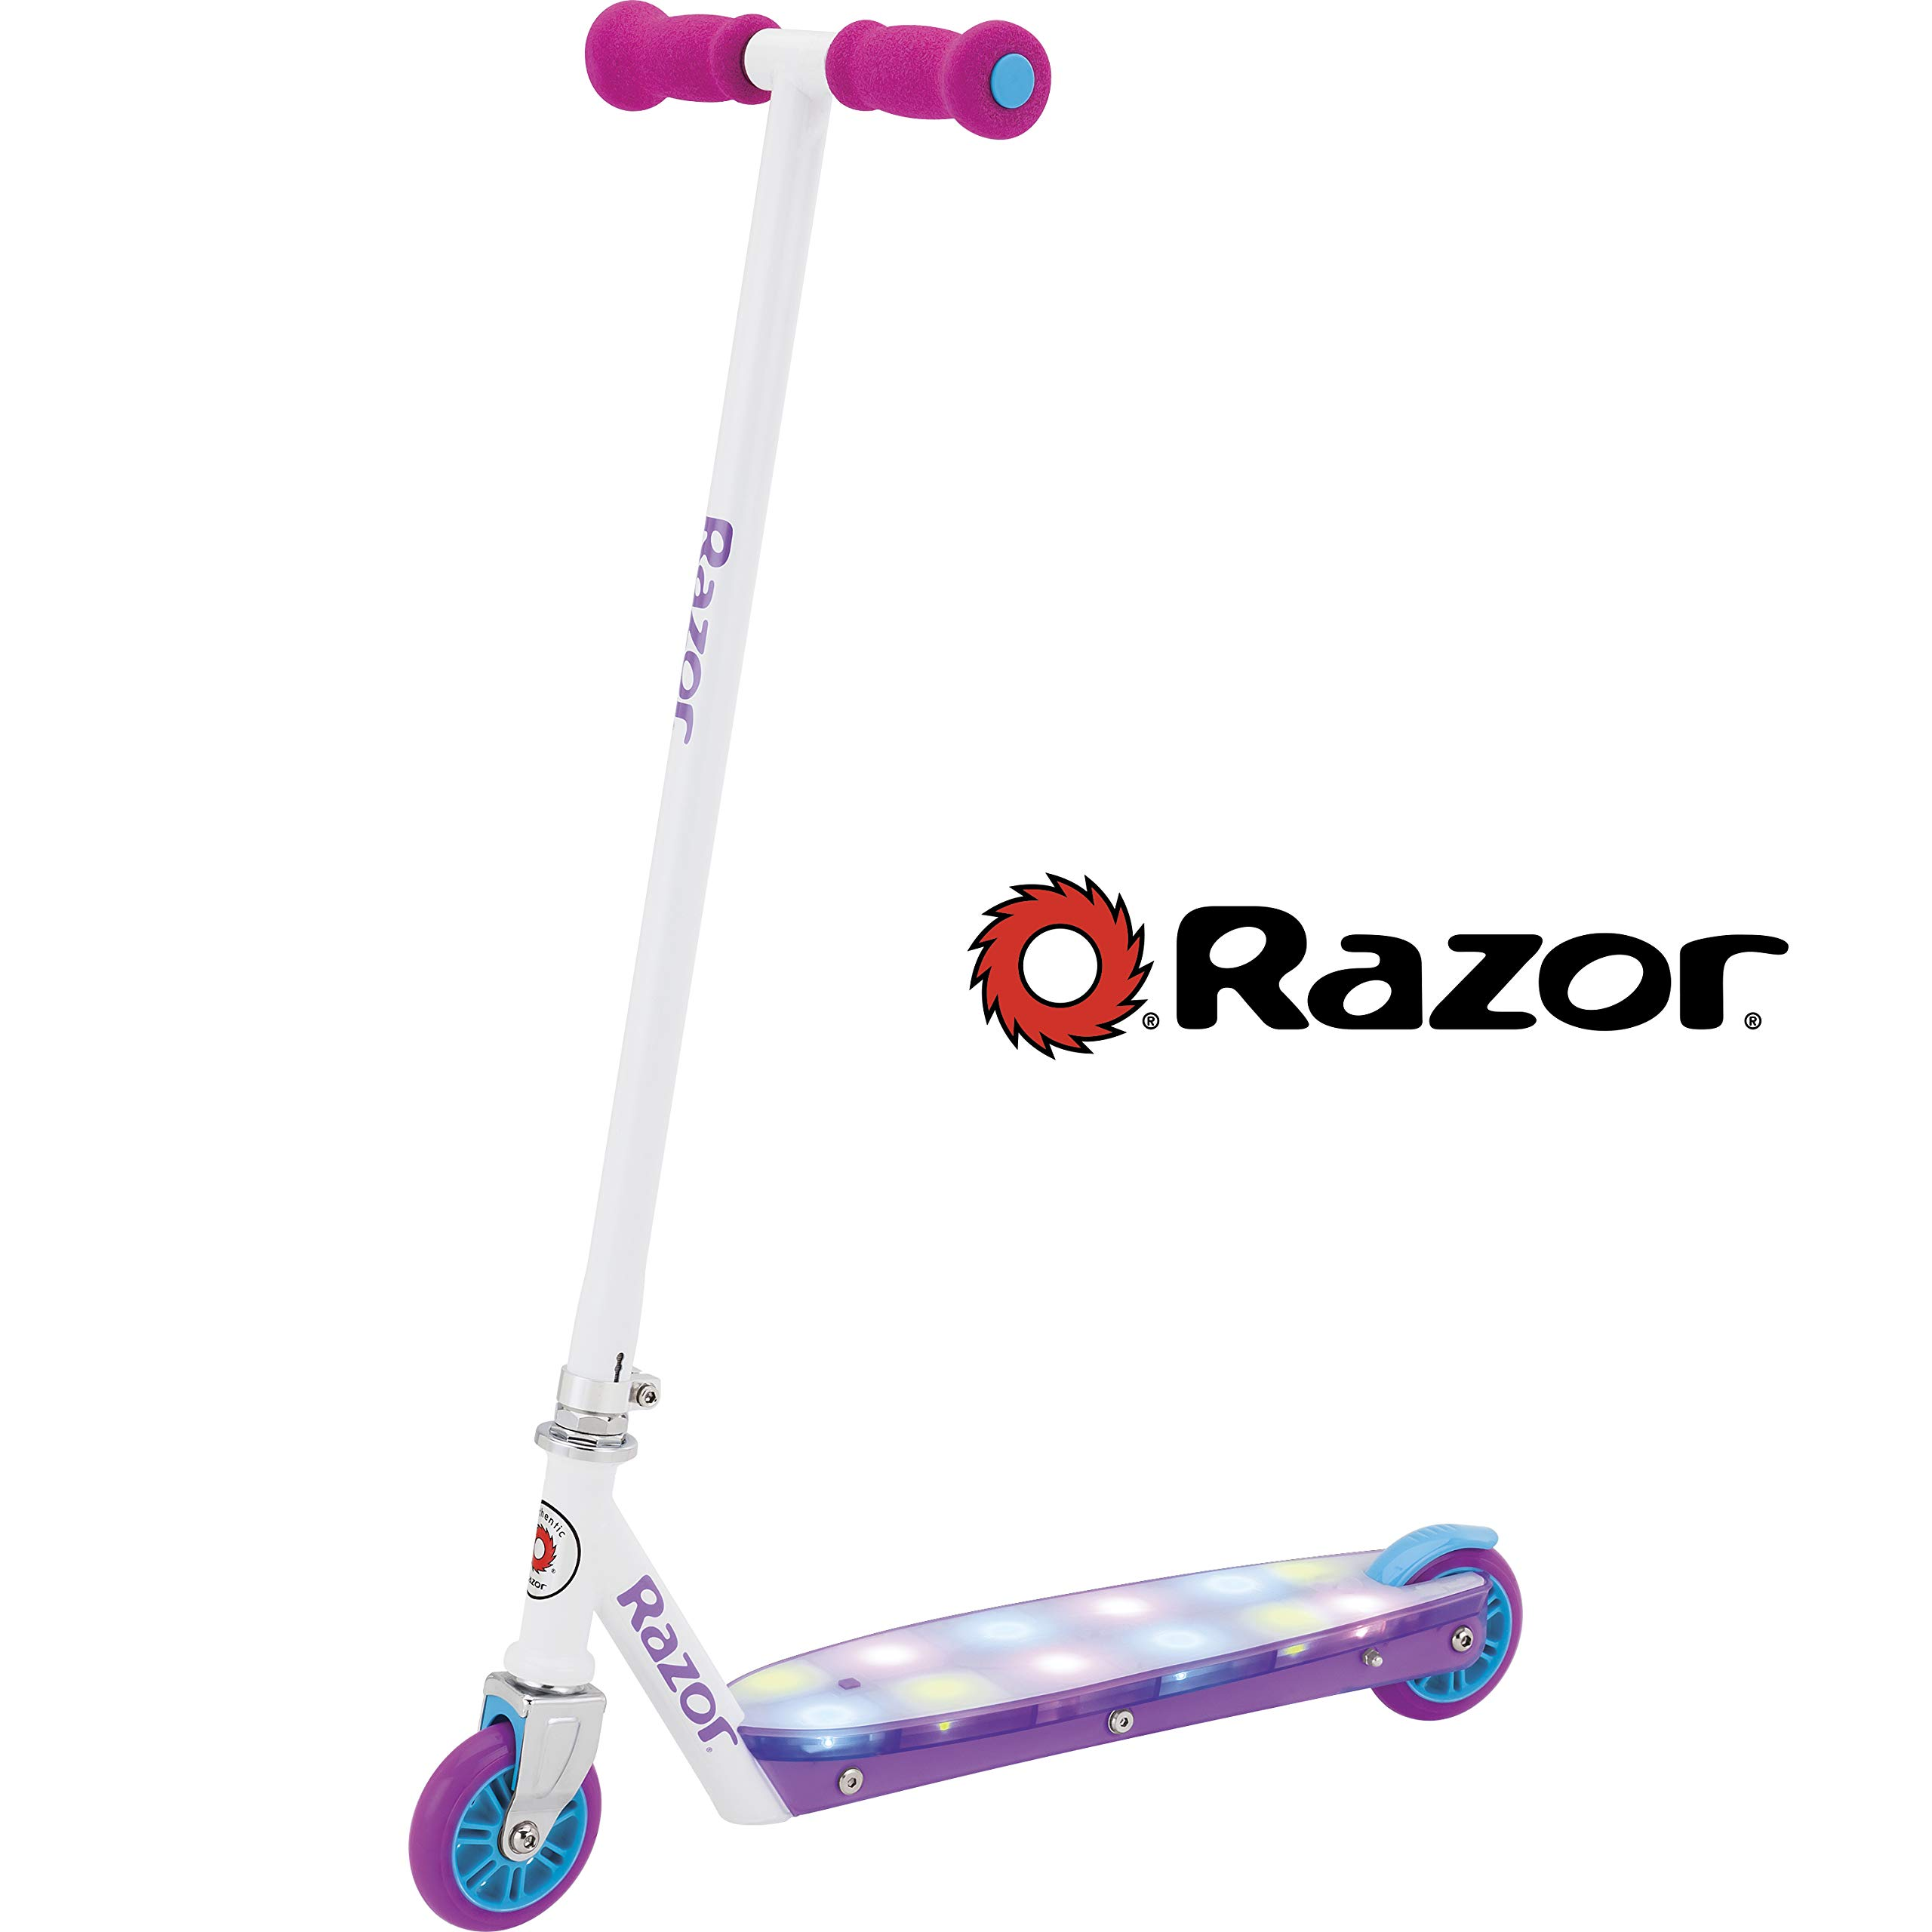 Razor Party Pop Kick Scooter - FFP - 13011790 by Razor